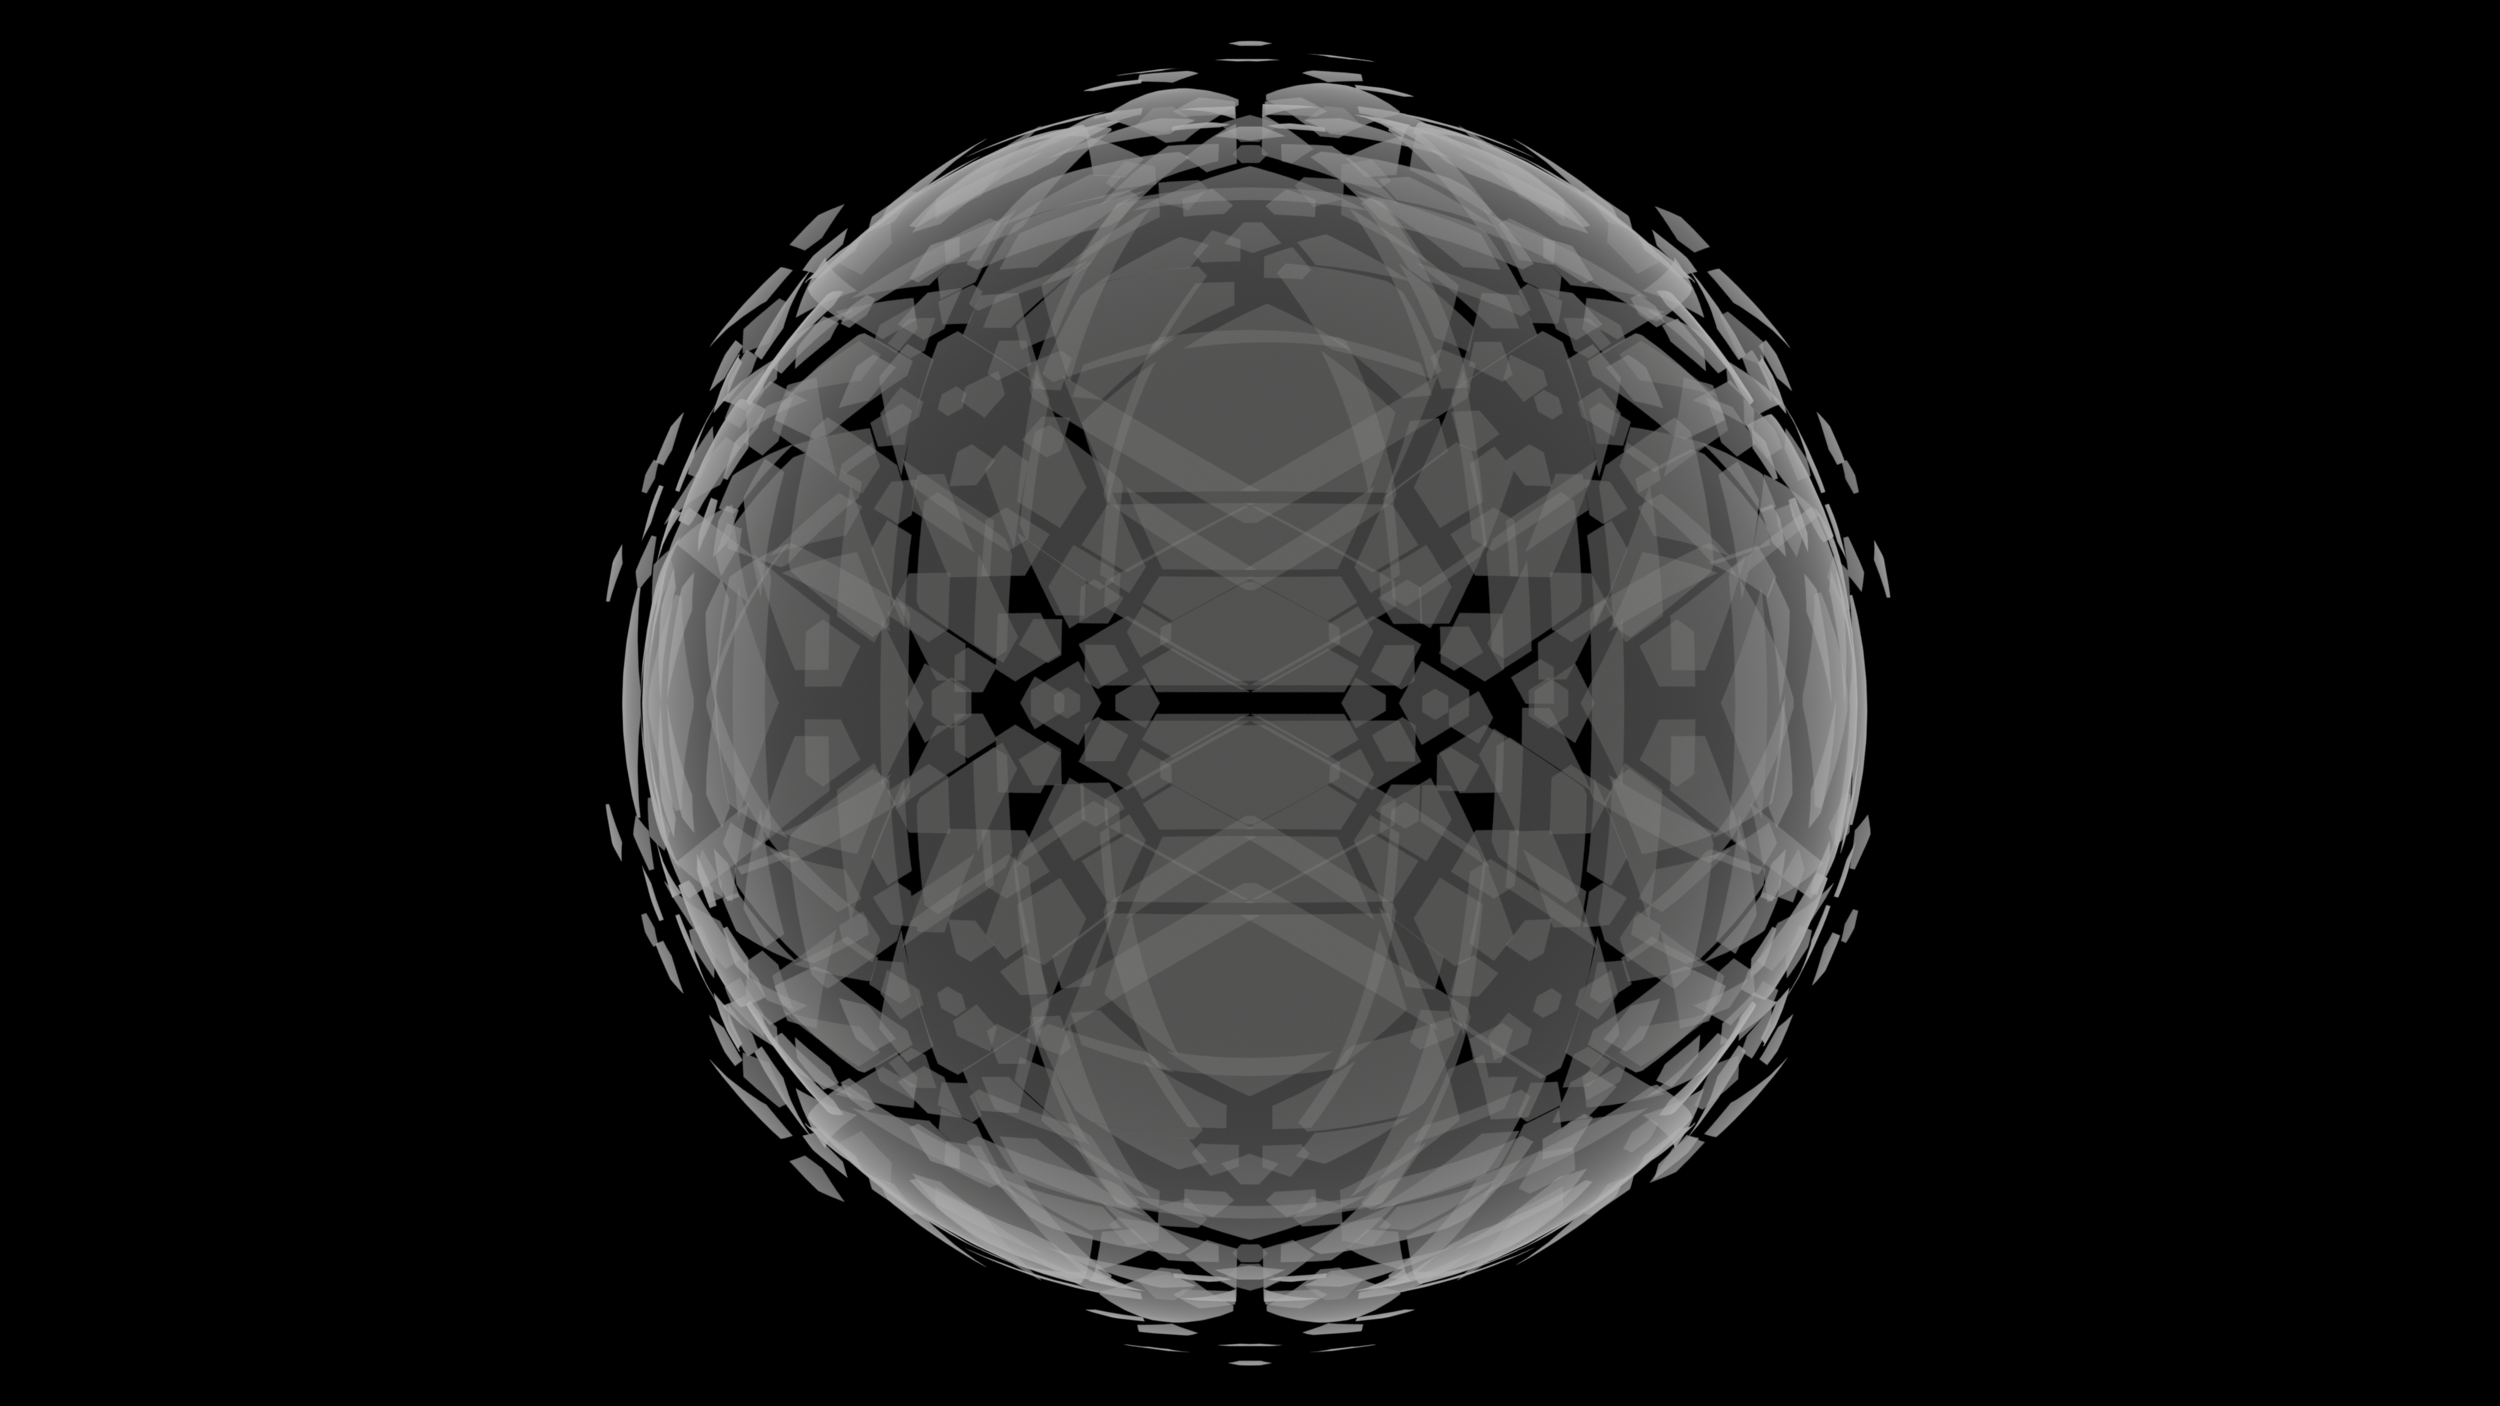 hex sphere fracture 06.png